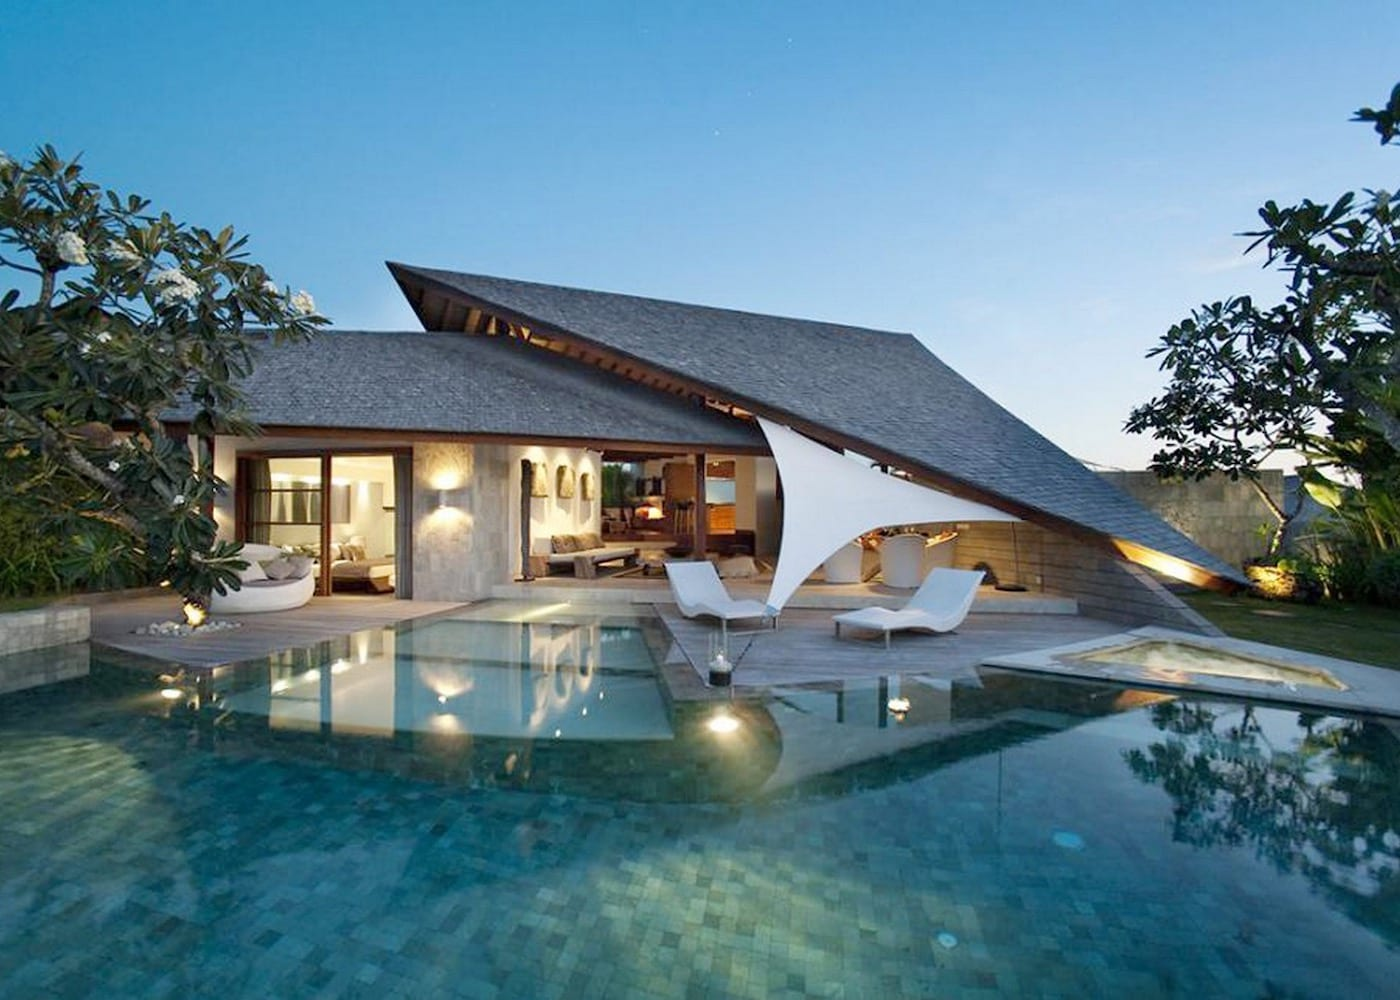 Inside The Layar - one of the best villa resorts in Seminyak, Bali, Indonesia